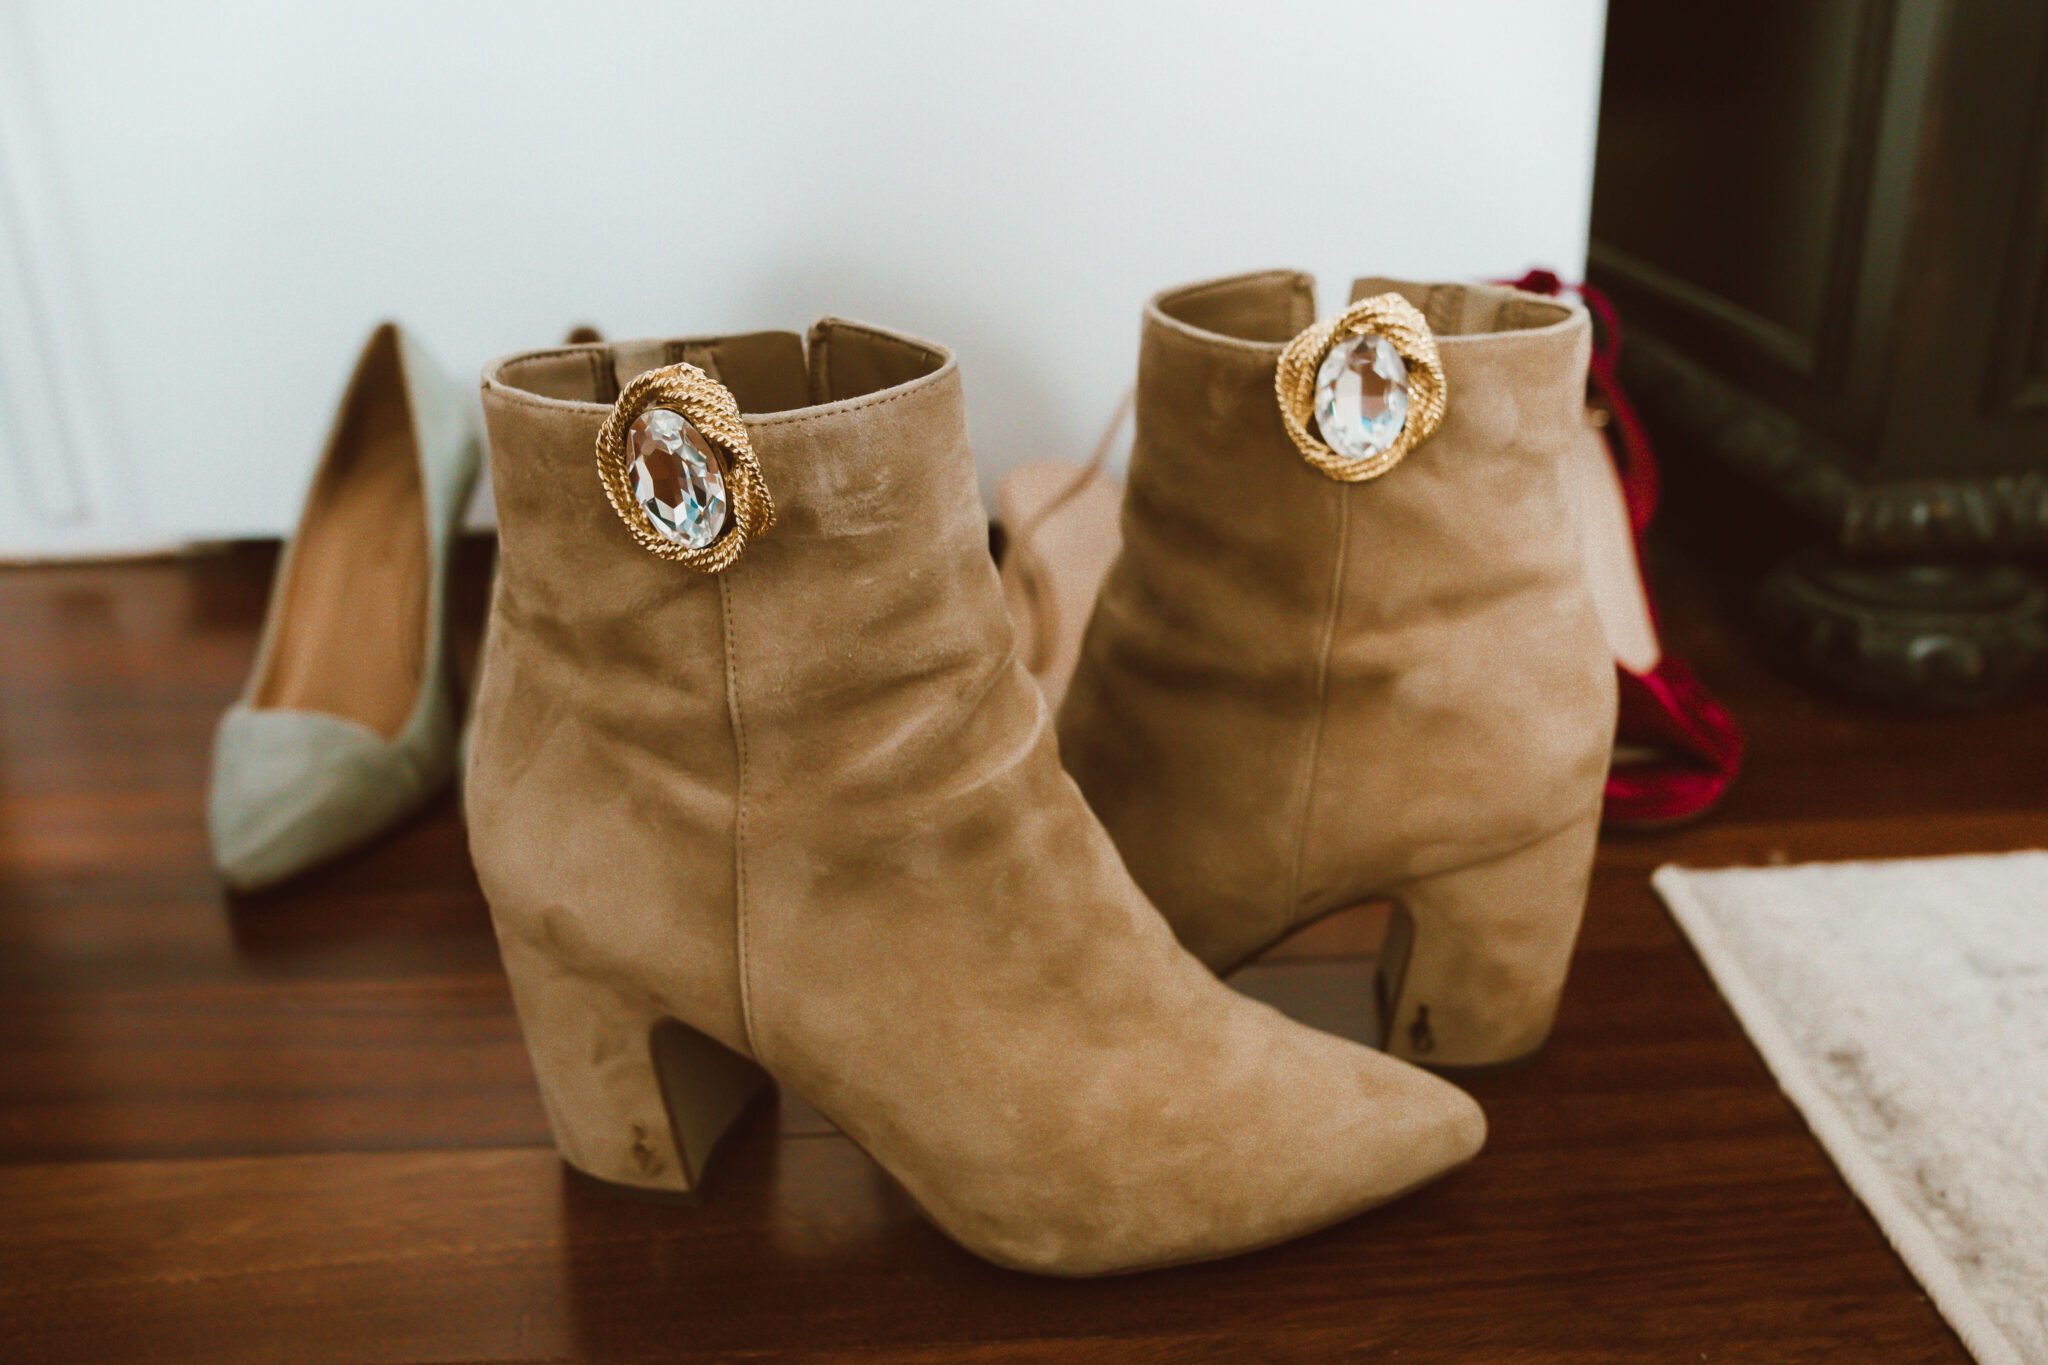 Clip On Earrings by popular Chicago fashion blog, Glass of Glam: image of brown suede ankle boots with clip on earrings attached to them.